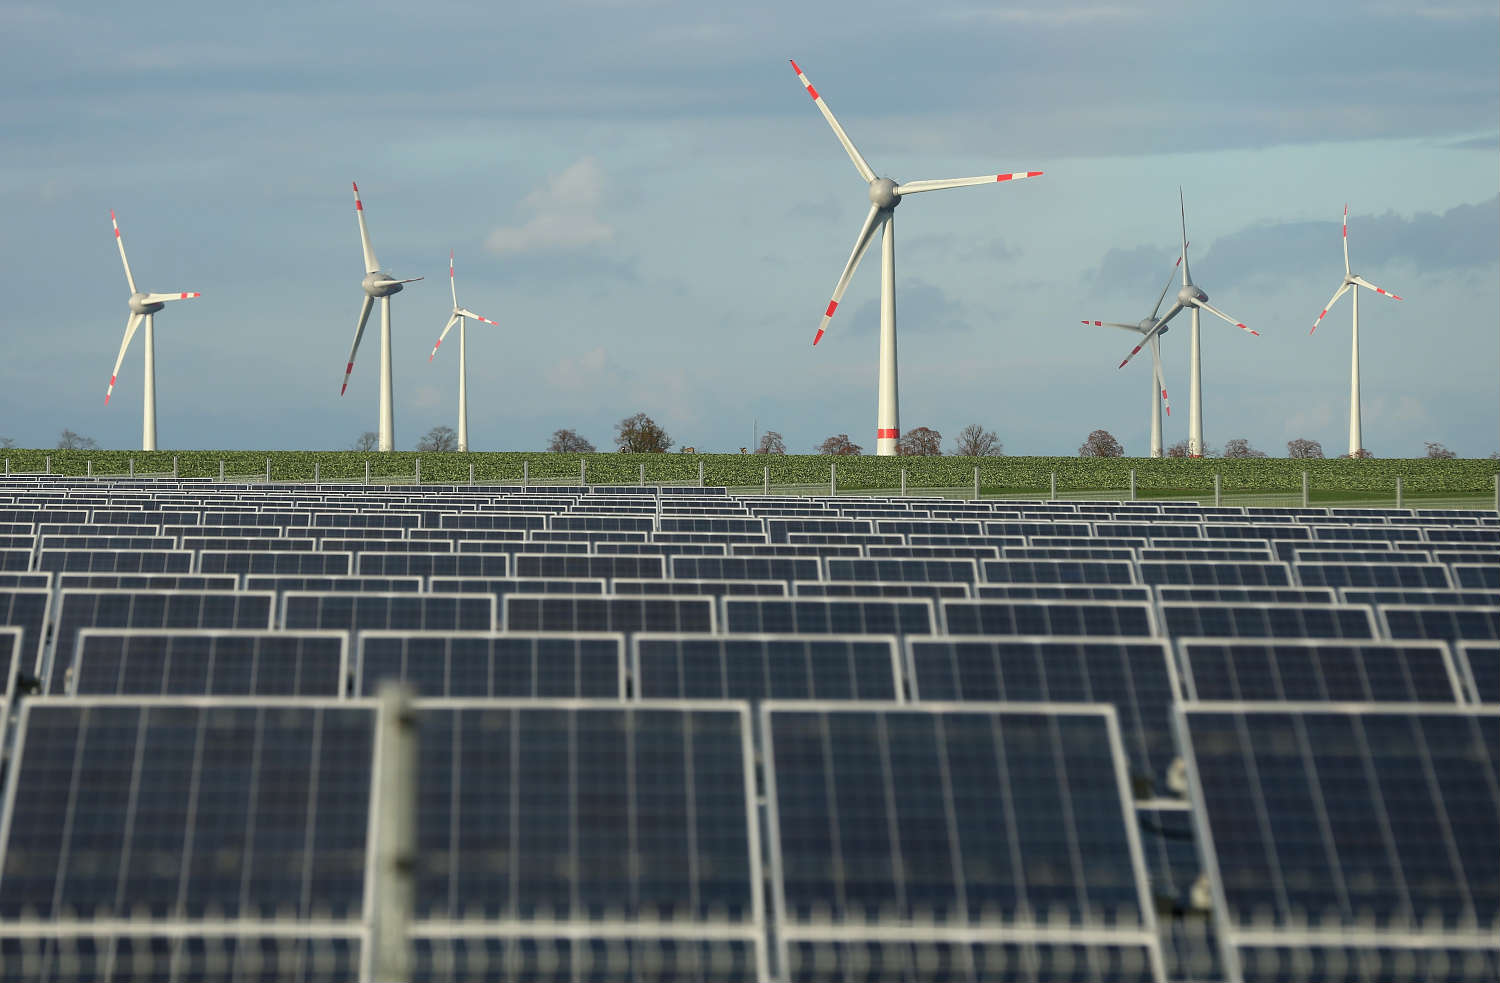 Germany has become a world leader in solar power